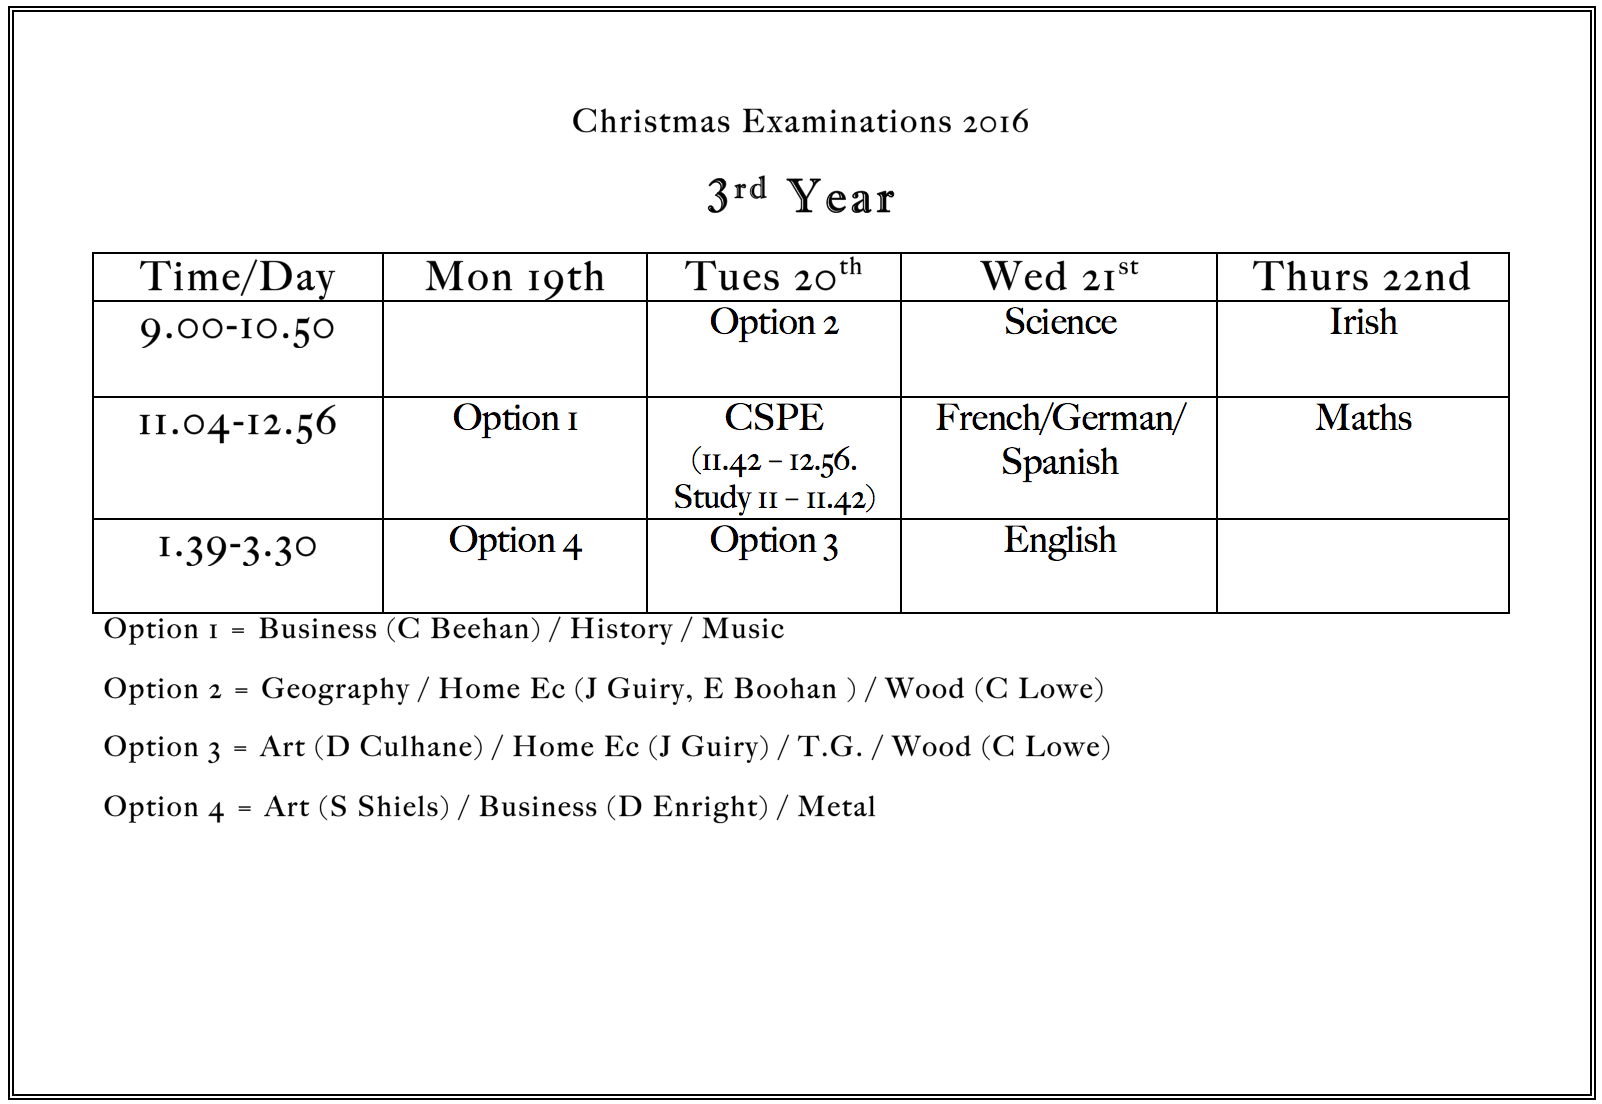 Dec 2016: Christmas Exam Time Table for 3rd Year Students